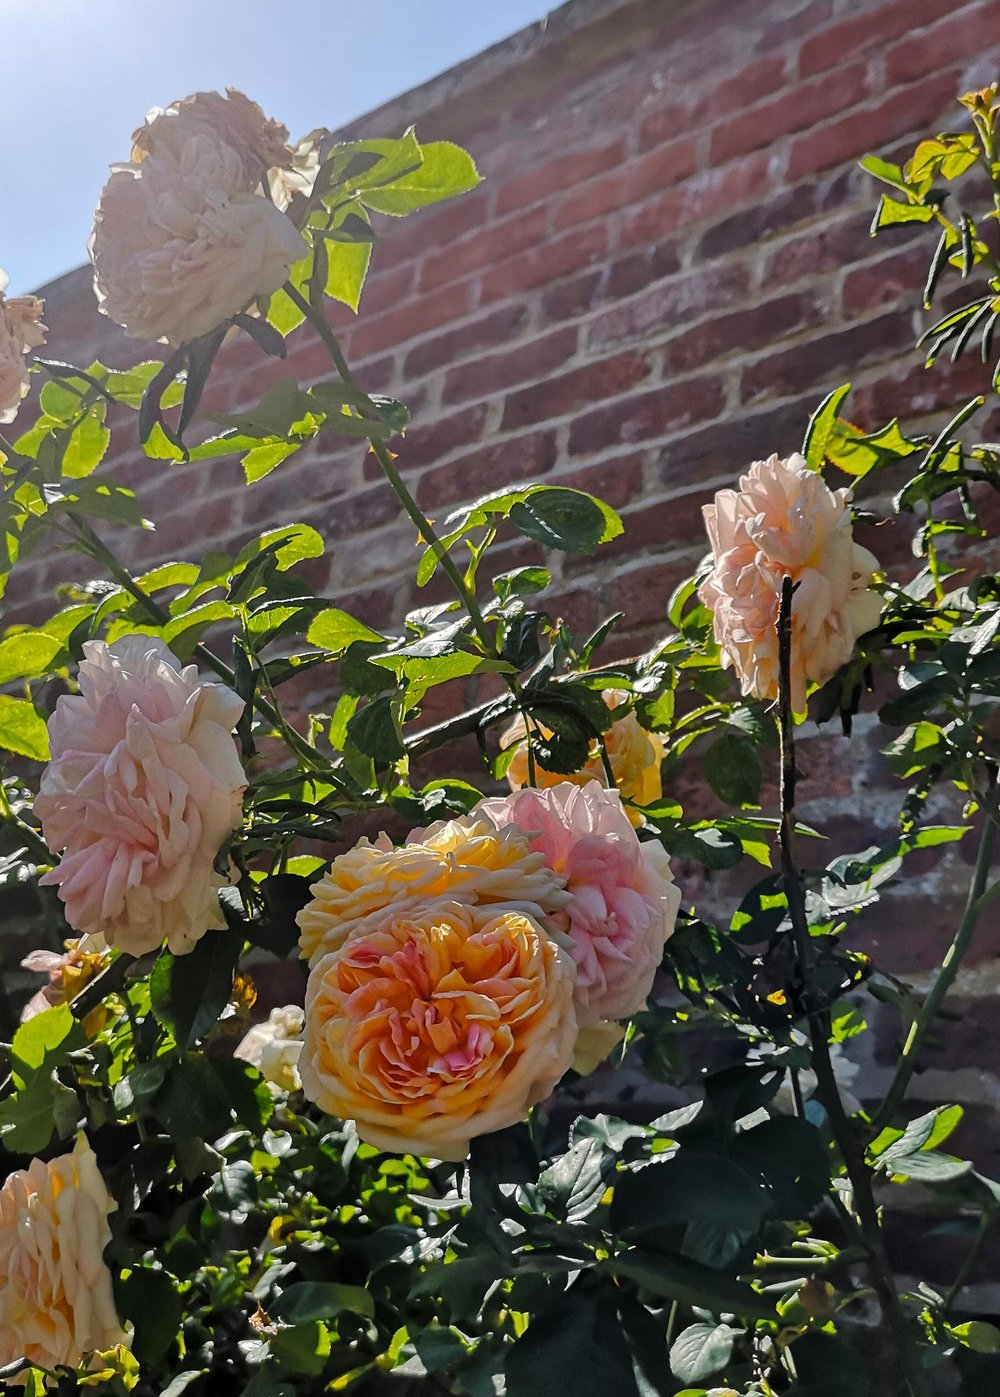 Abbotsford gardens peach roses and wall#.jpg